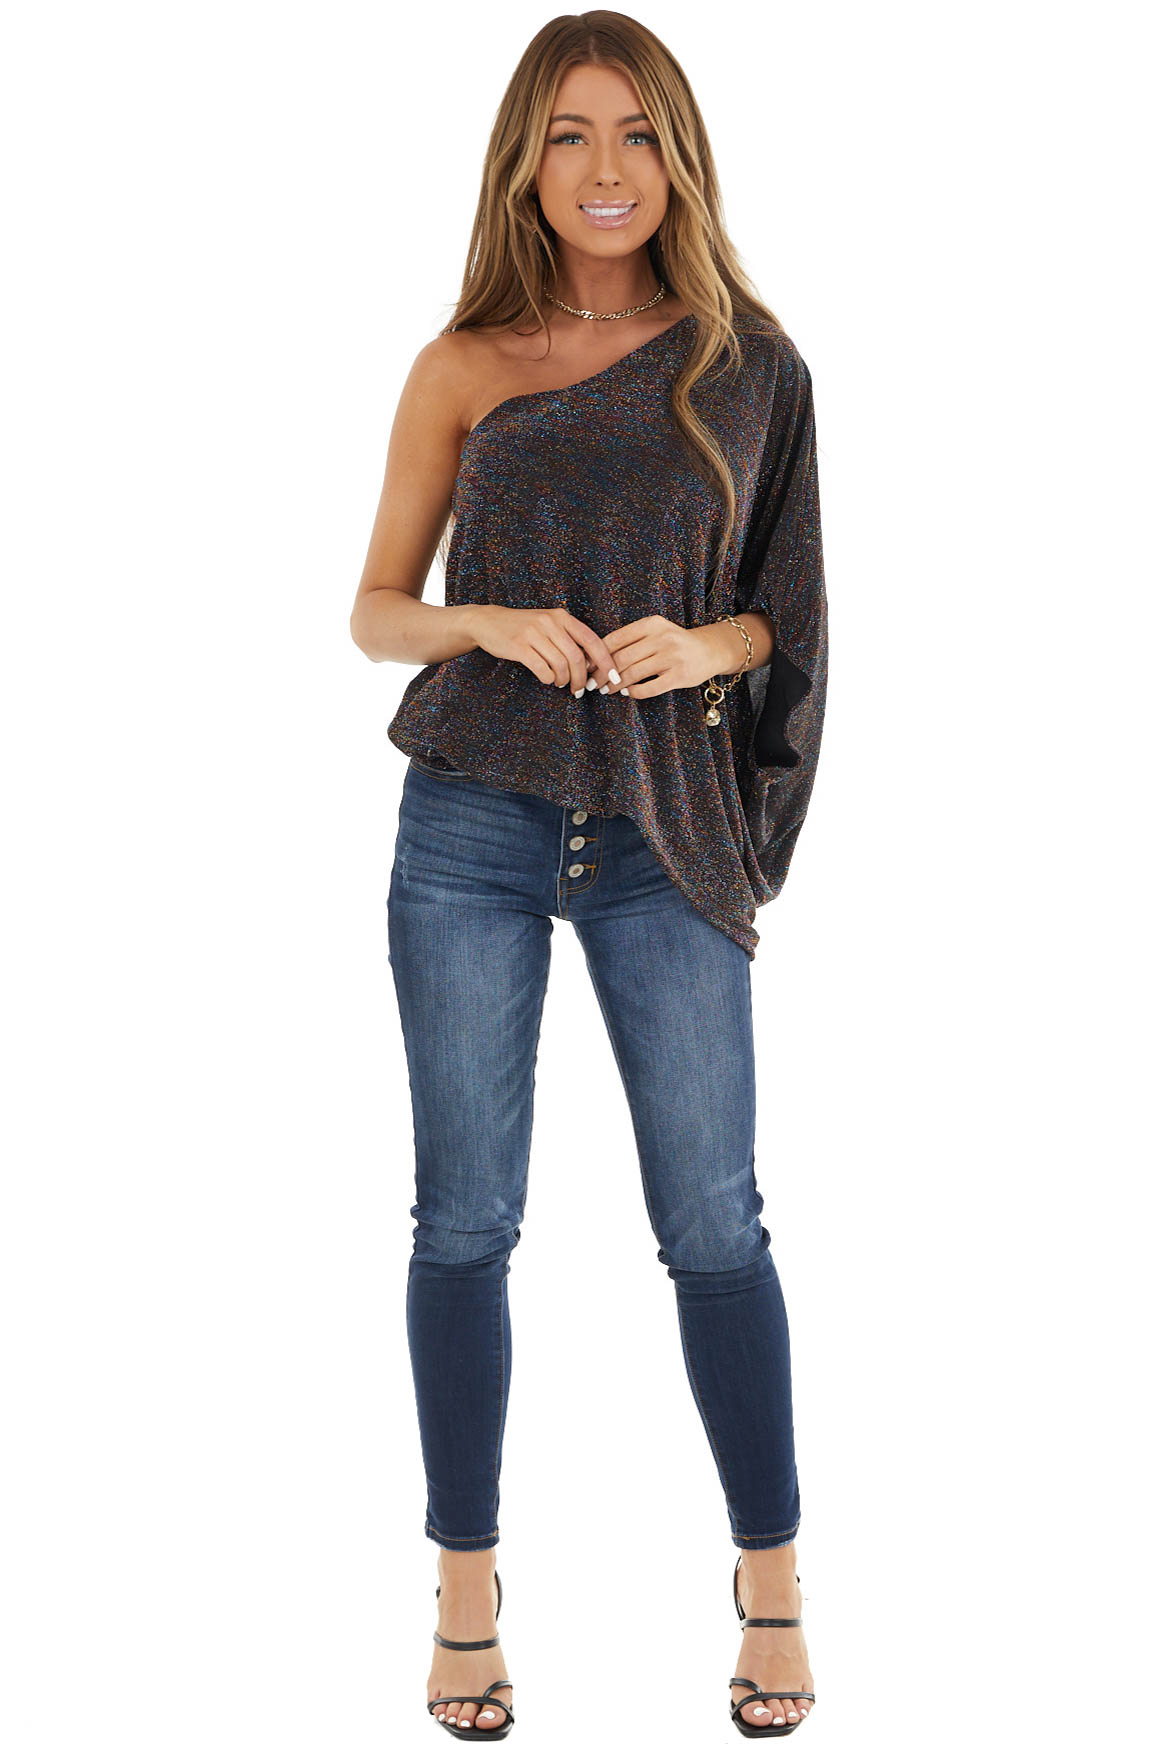 Black Multicolored Glitter Top with One Shoulder Detail